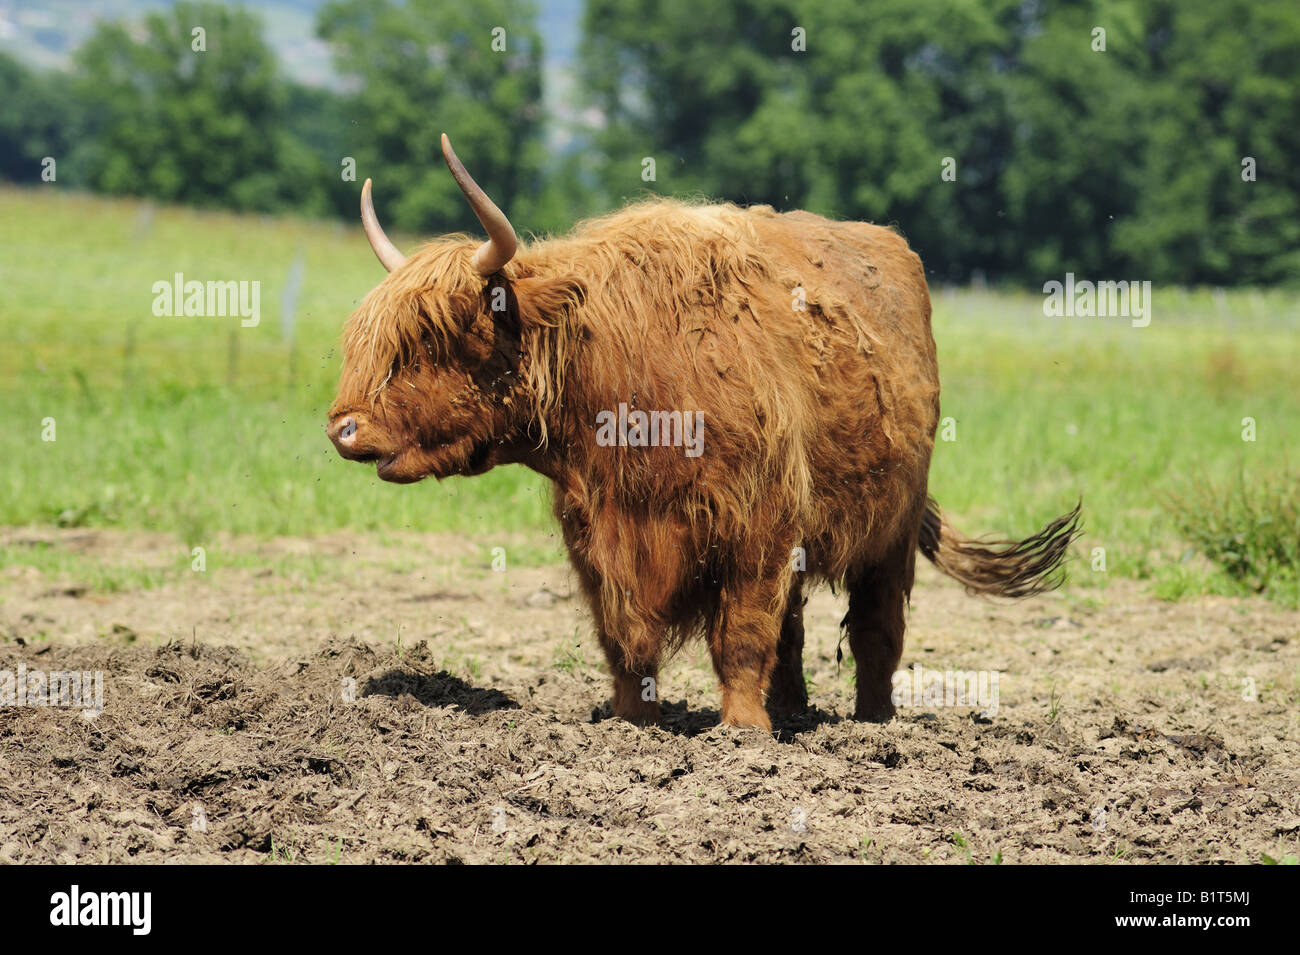 Hairy coo ruminating - Stock Image